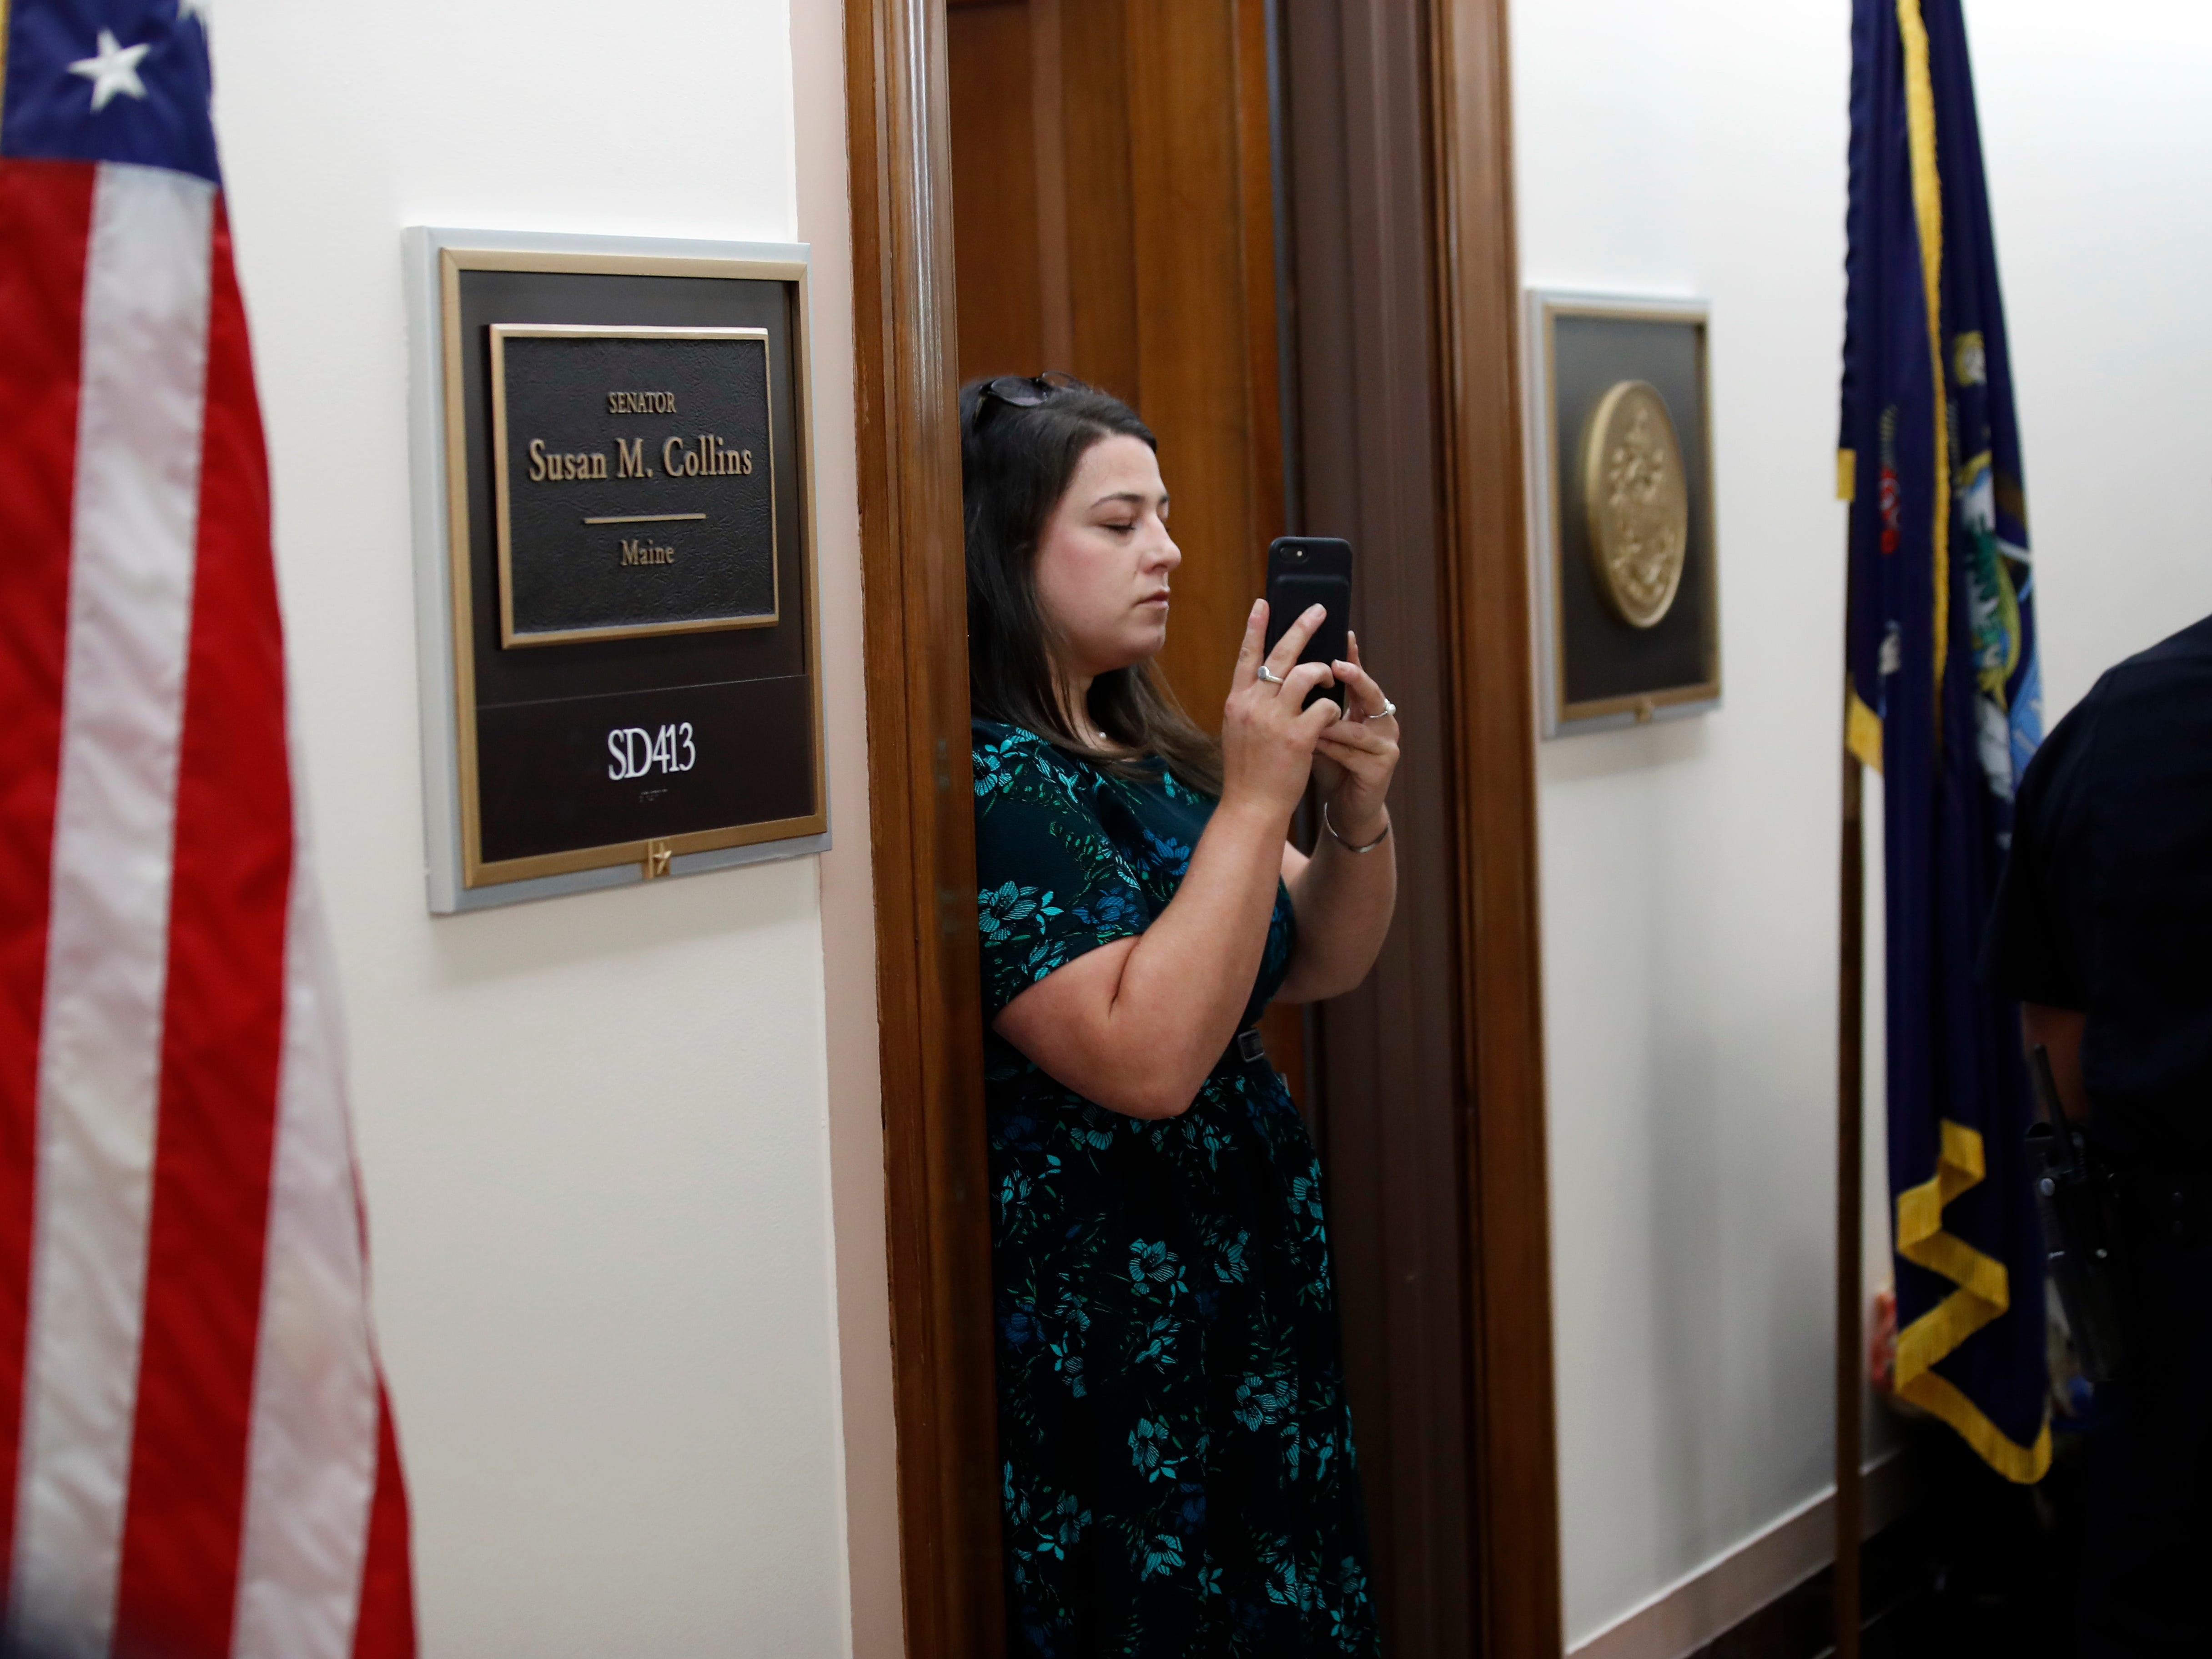 A staff member records protesters against Judge Brett Kavanaugh as Capitol Hill Police officers make arrests outside the office of Sen. Susan Collins, R-Maine, on Capitol Hill, Monday, Sept. 24, 2018 in Washington. A second allegation of sexual misconduct has emerged against Judge Brett Kavanaugh, a development that has further imperiled his nomination to the Supreme Court, forced the White House and Senate Republicans onto the defensive and fueled calls from Democrats to postpone further action on his confirmation. President Donald Trump is so far standing by his nominee. (AP Photo/Alex Brandon) ORG XMIT: DCAB106